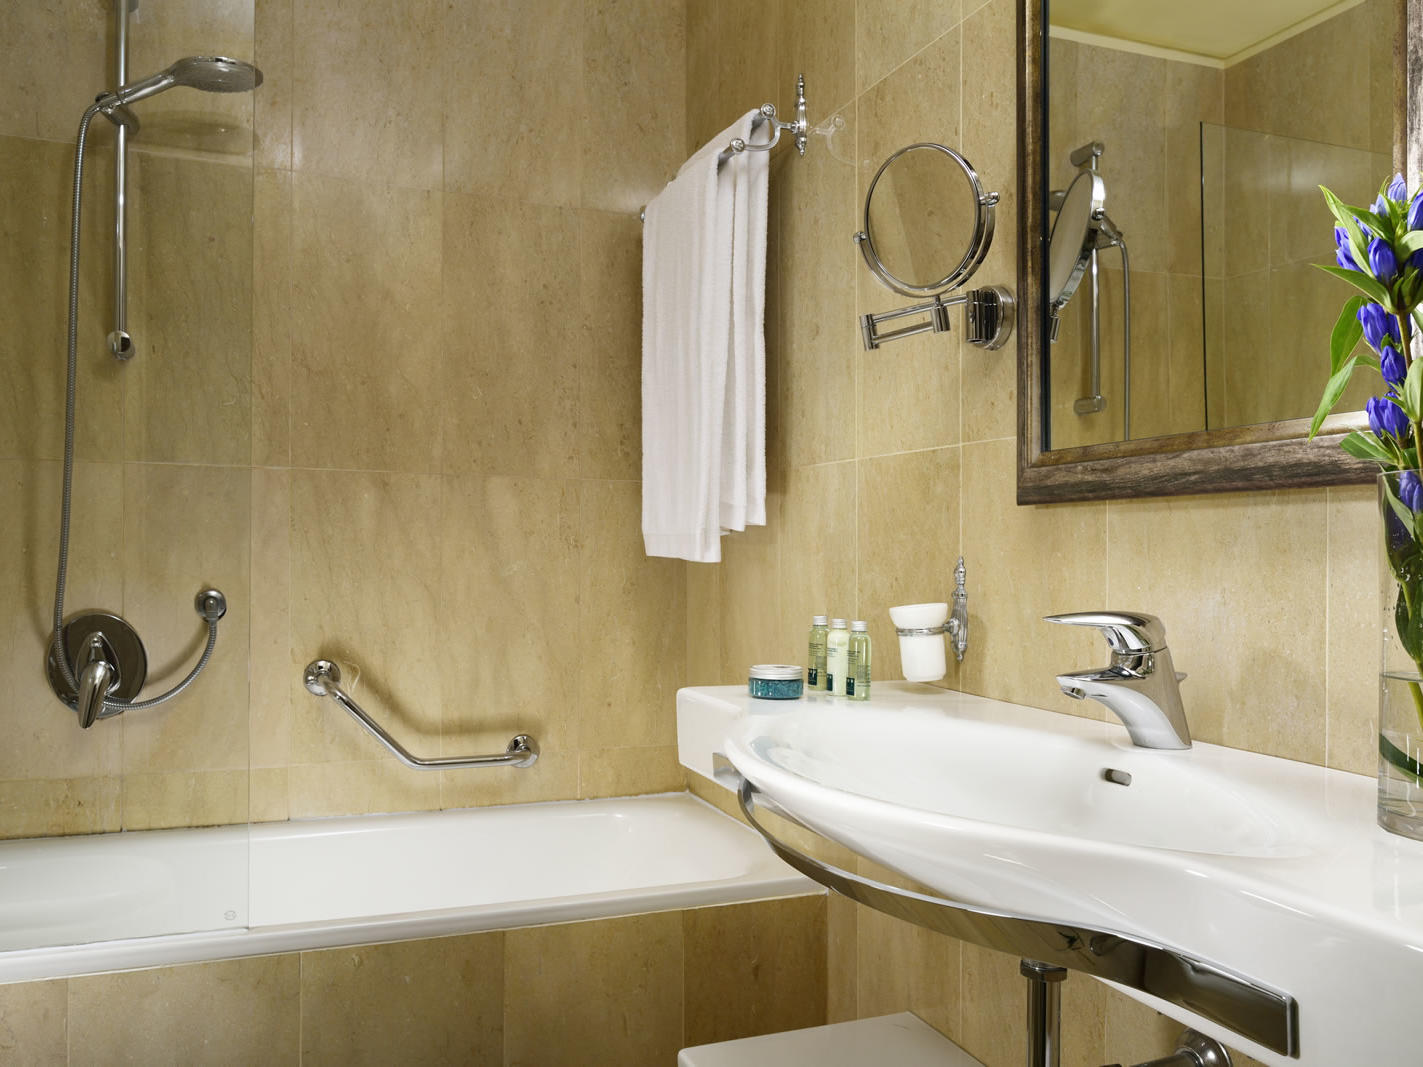 Executive Room - Bathroom | Maison Venezia